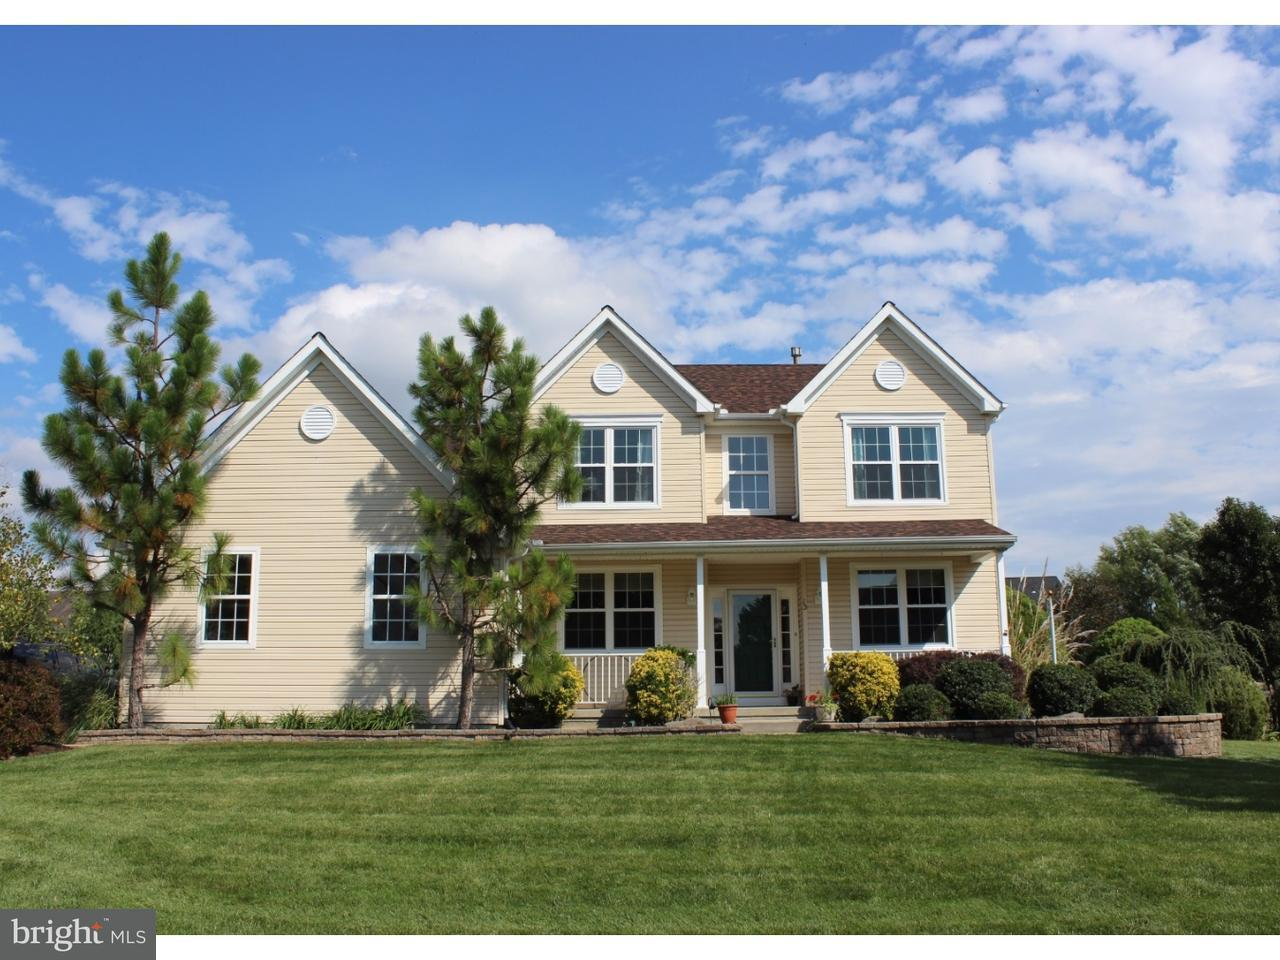 Single Family Home for Sale at 15 CANDLELIGHT Drive Woodstown, New Jersey 08098 United States